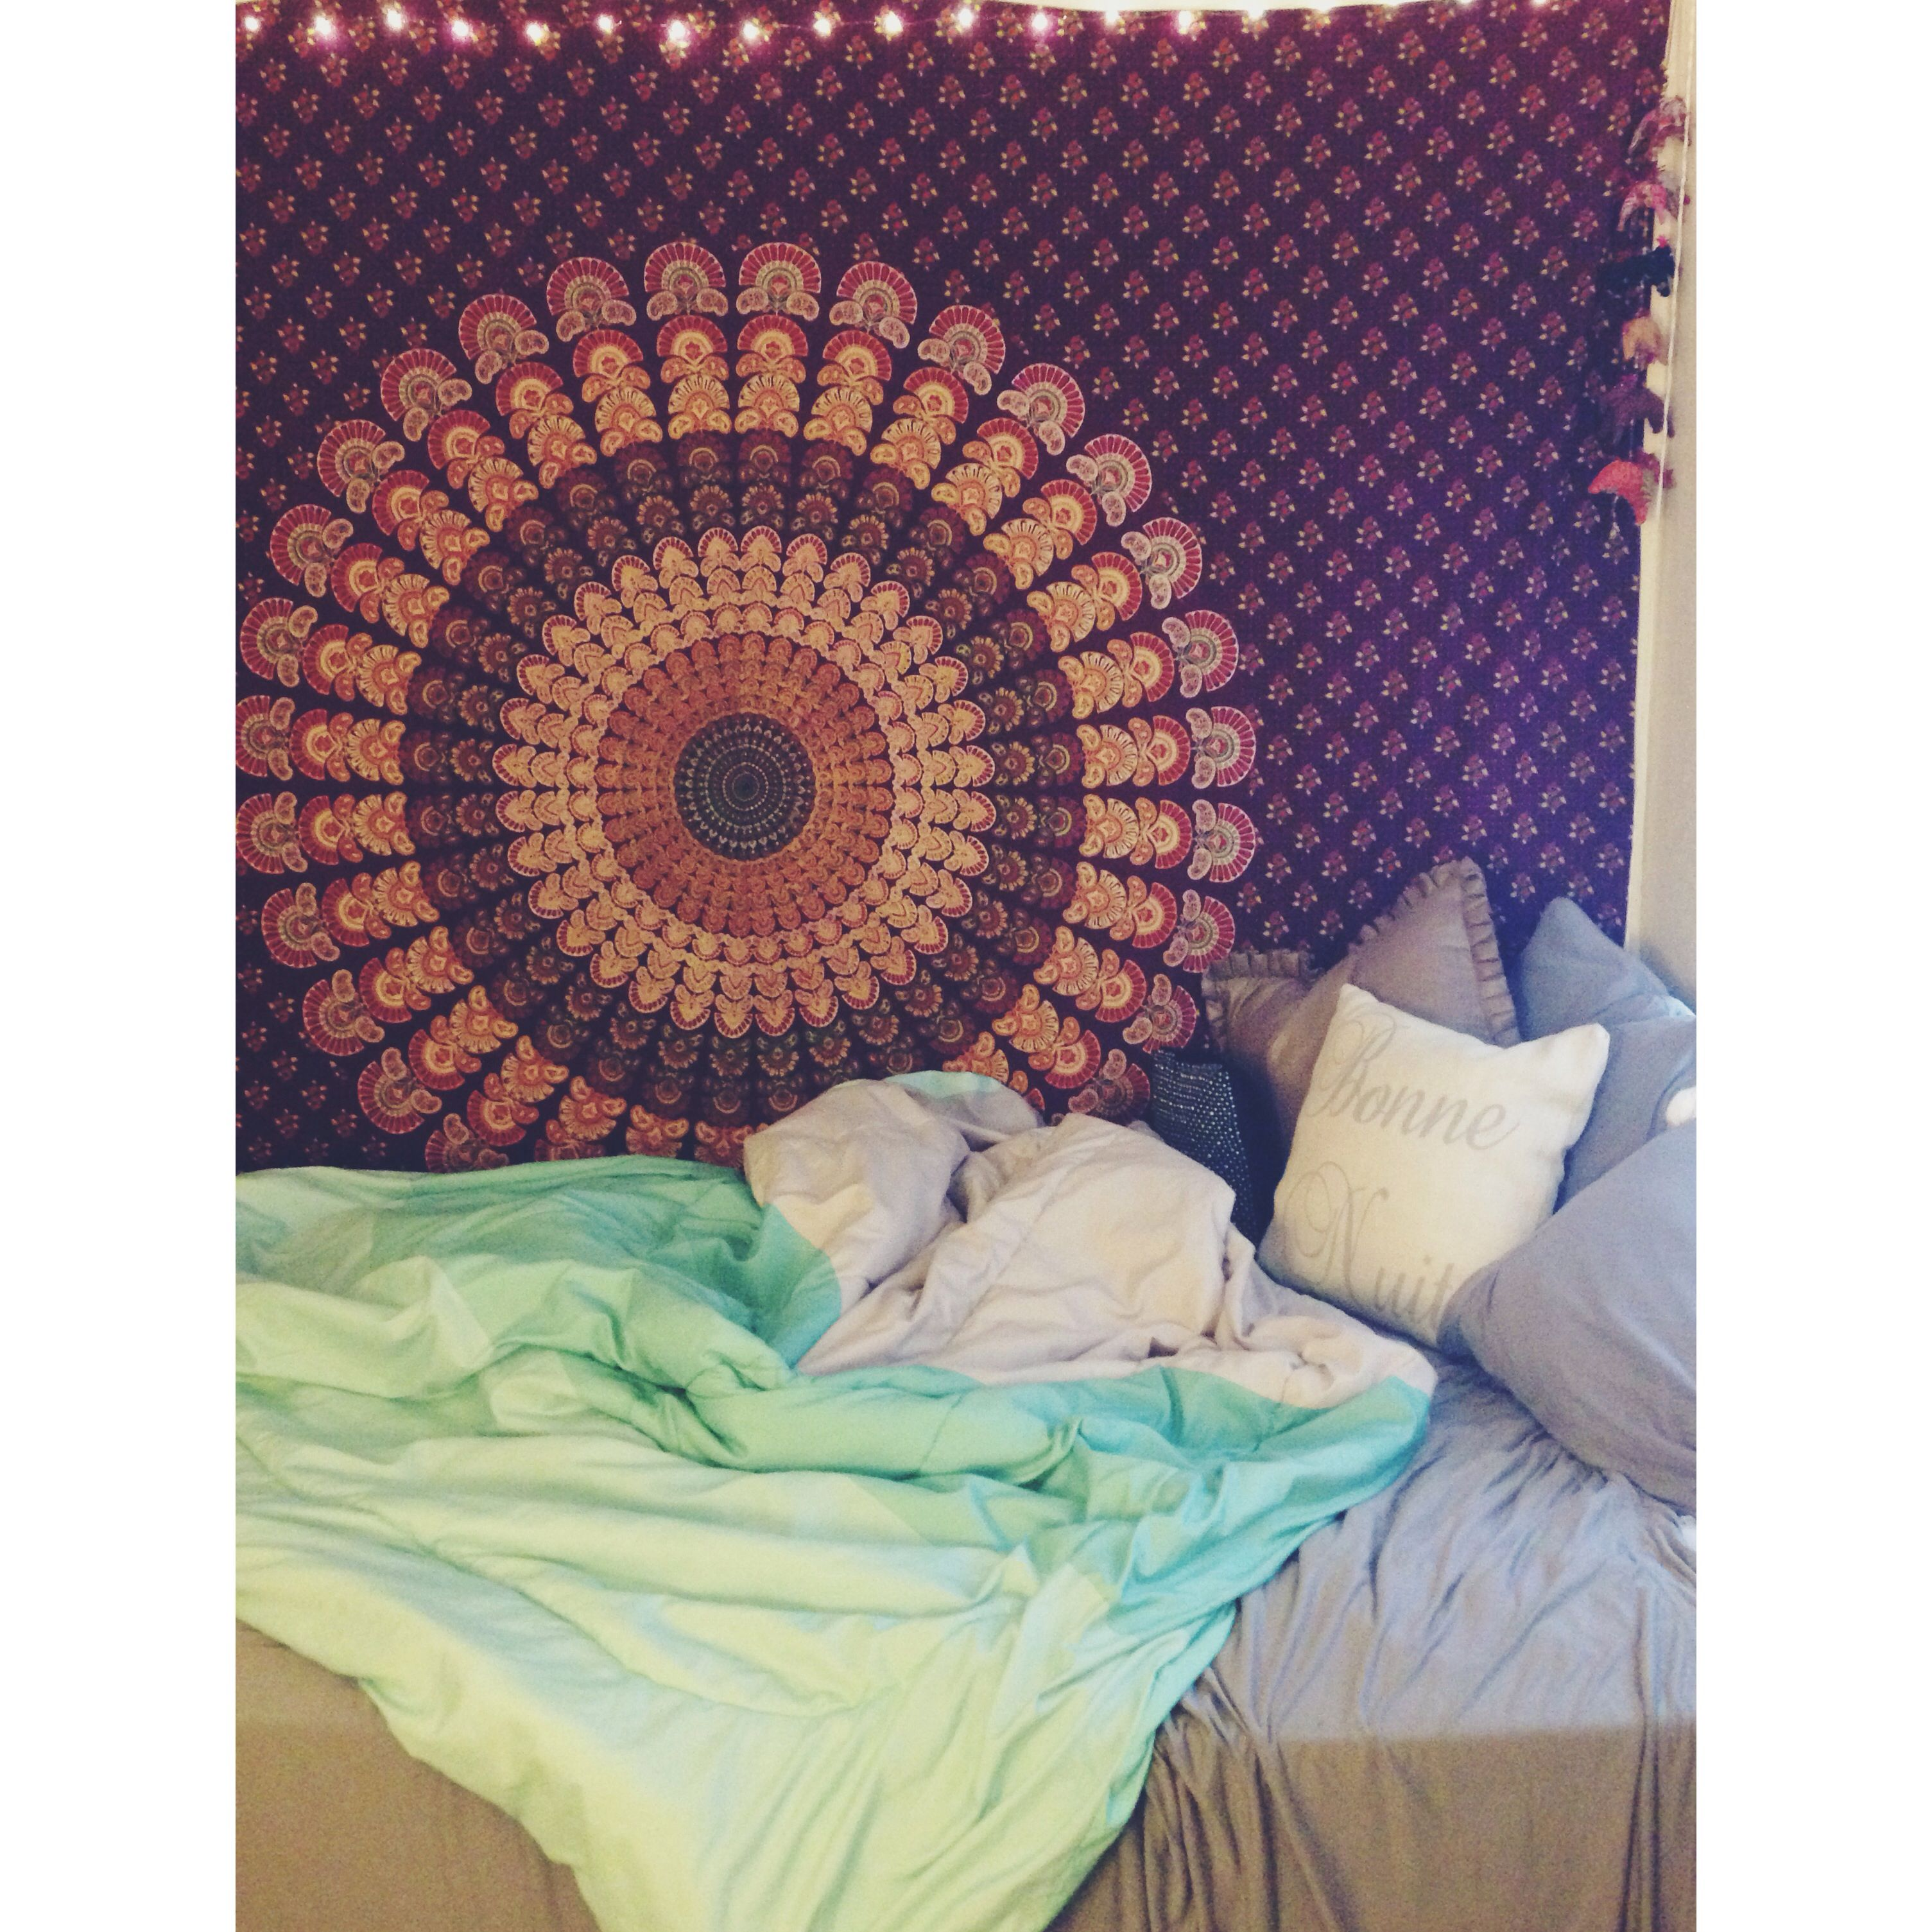 light college apartment rooms. Boho Tapestry Room Decor College Dorm Lights Apartment  Dorm Decor